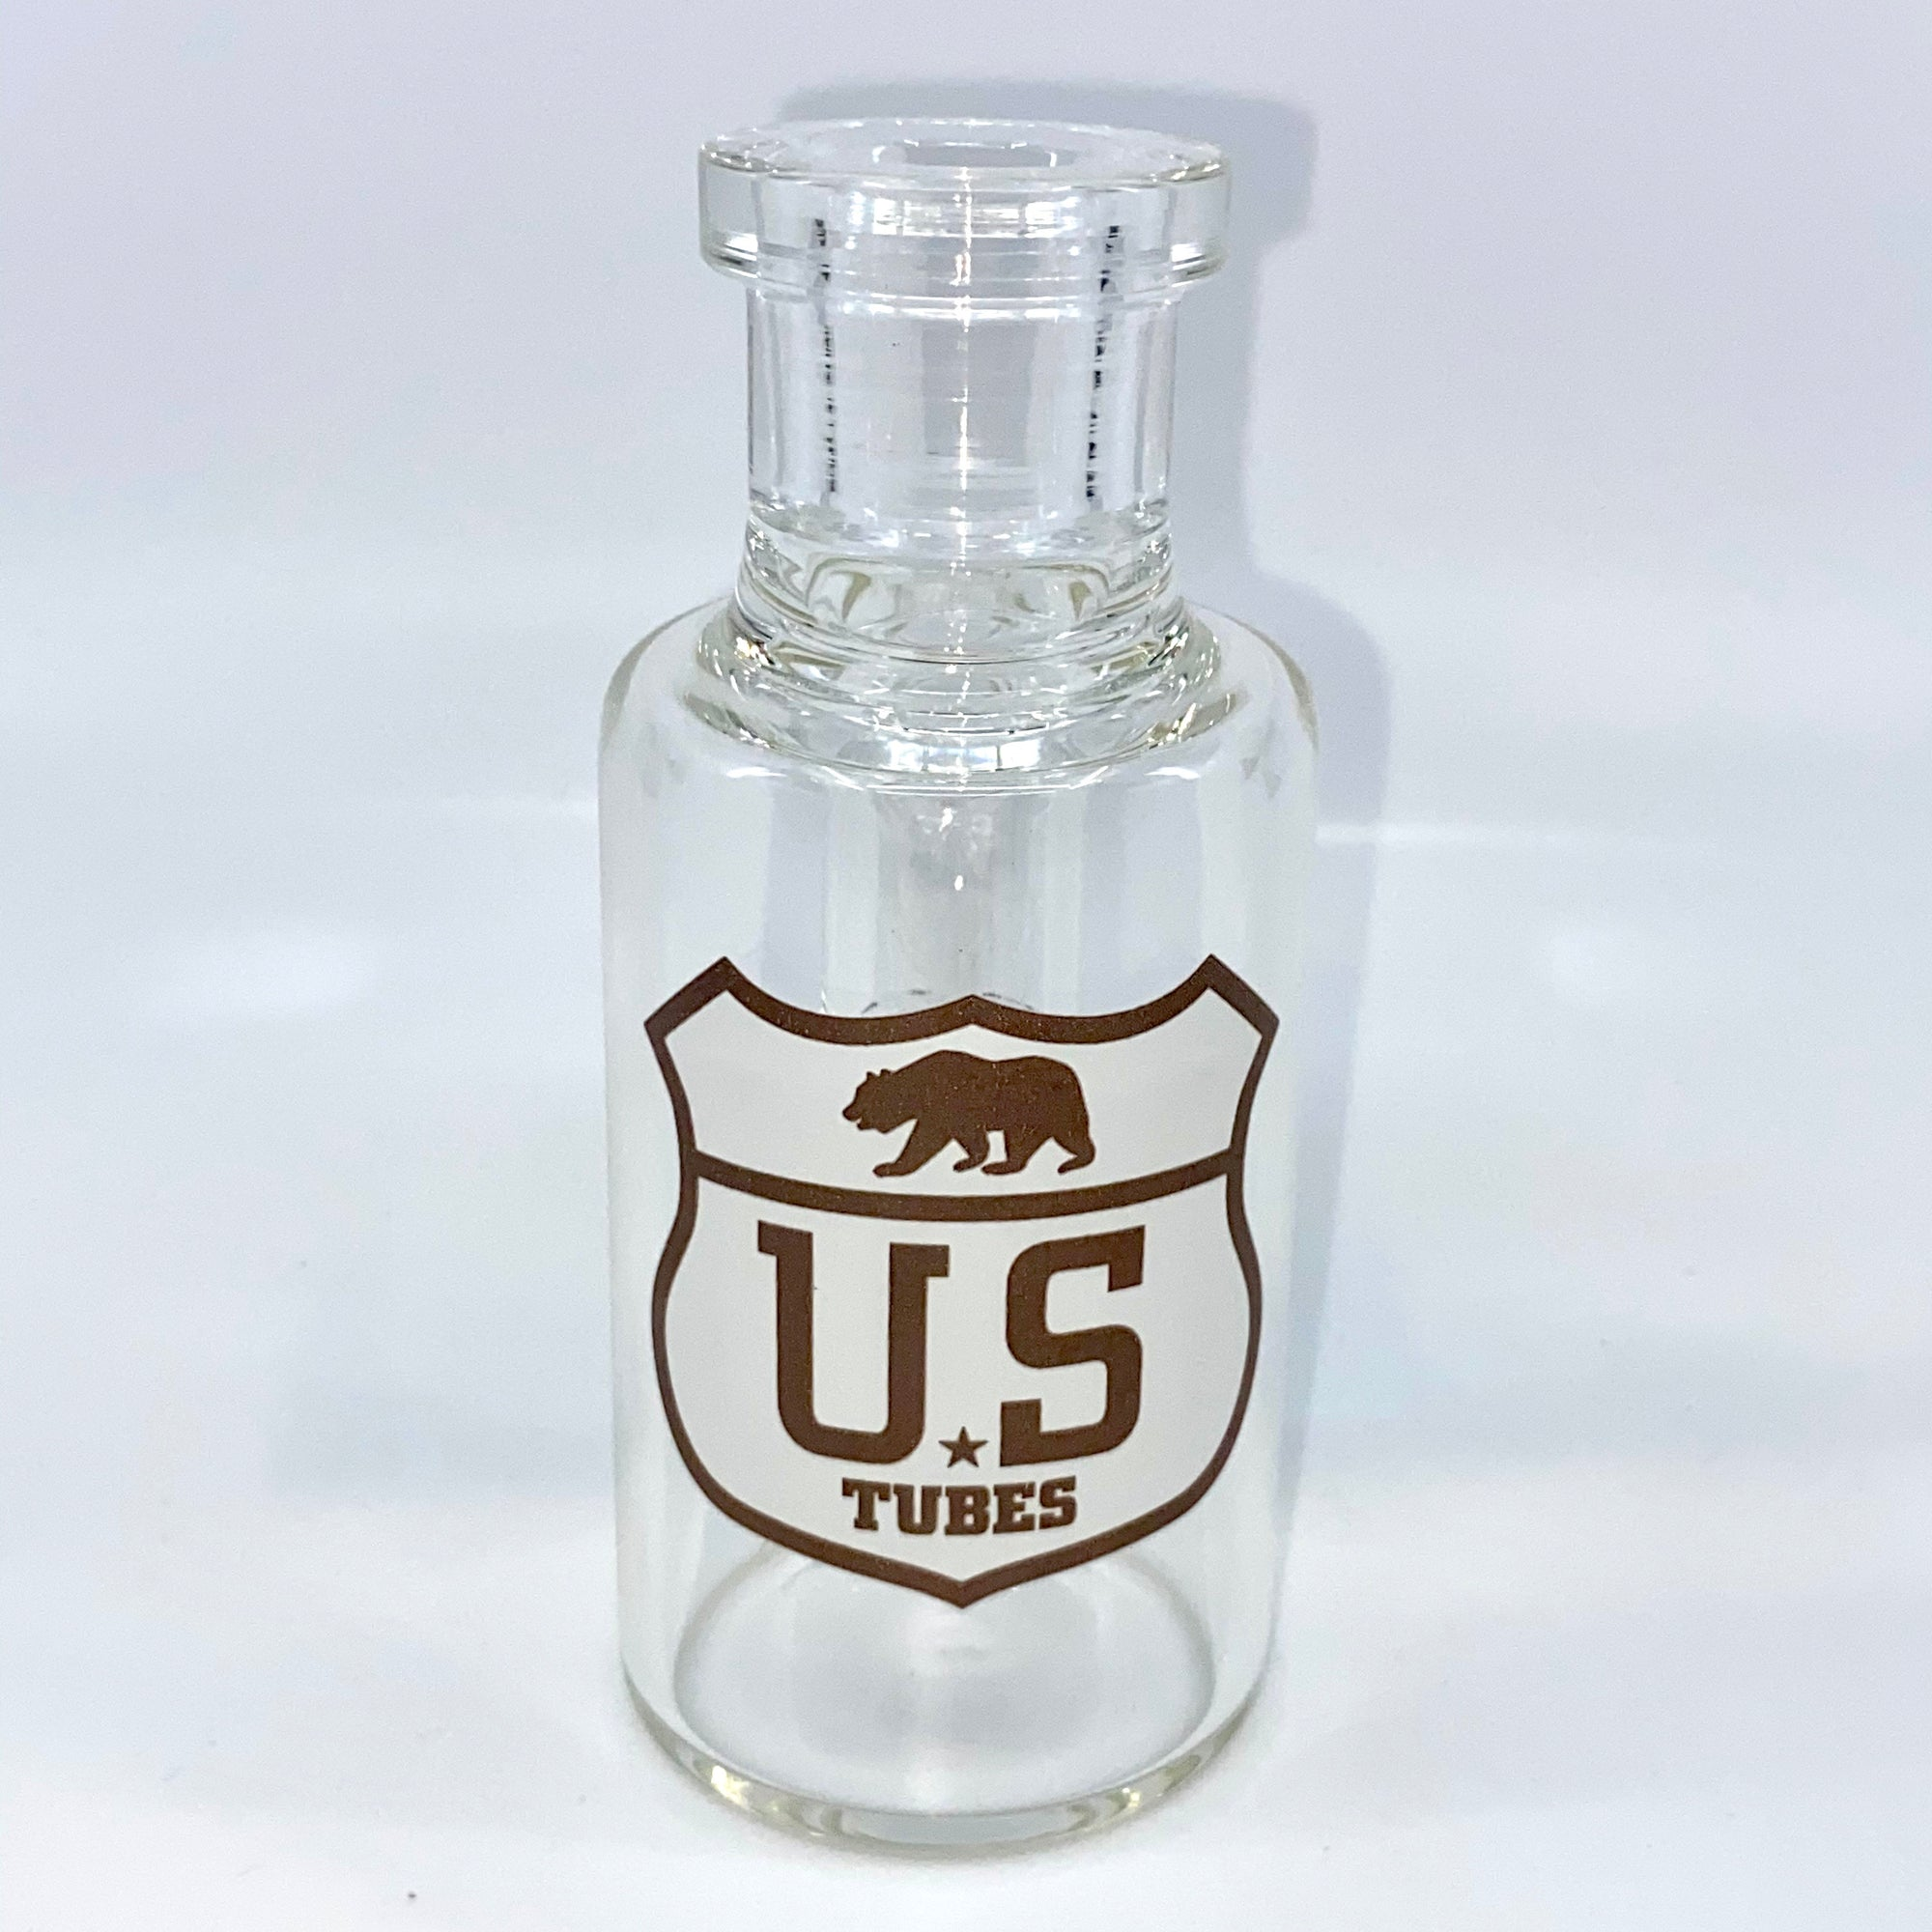 US TUBES 19mm 45 Degree Dry Catcher (White/Amber HWY Decal) s